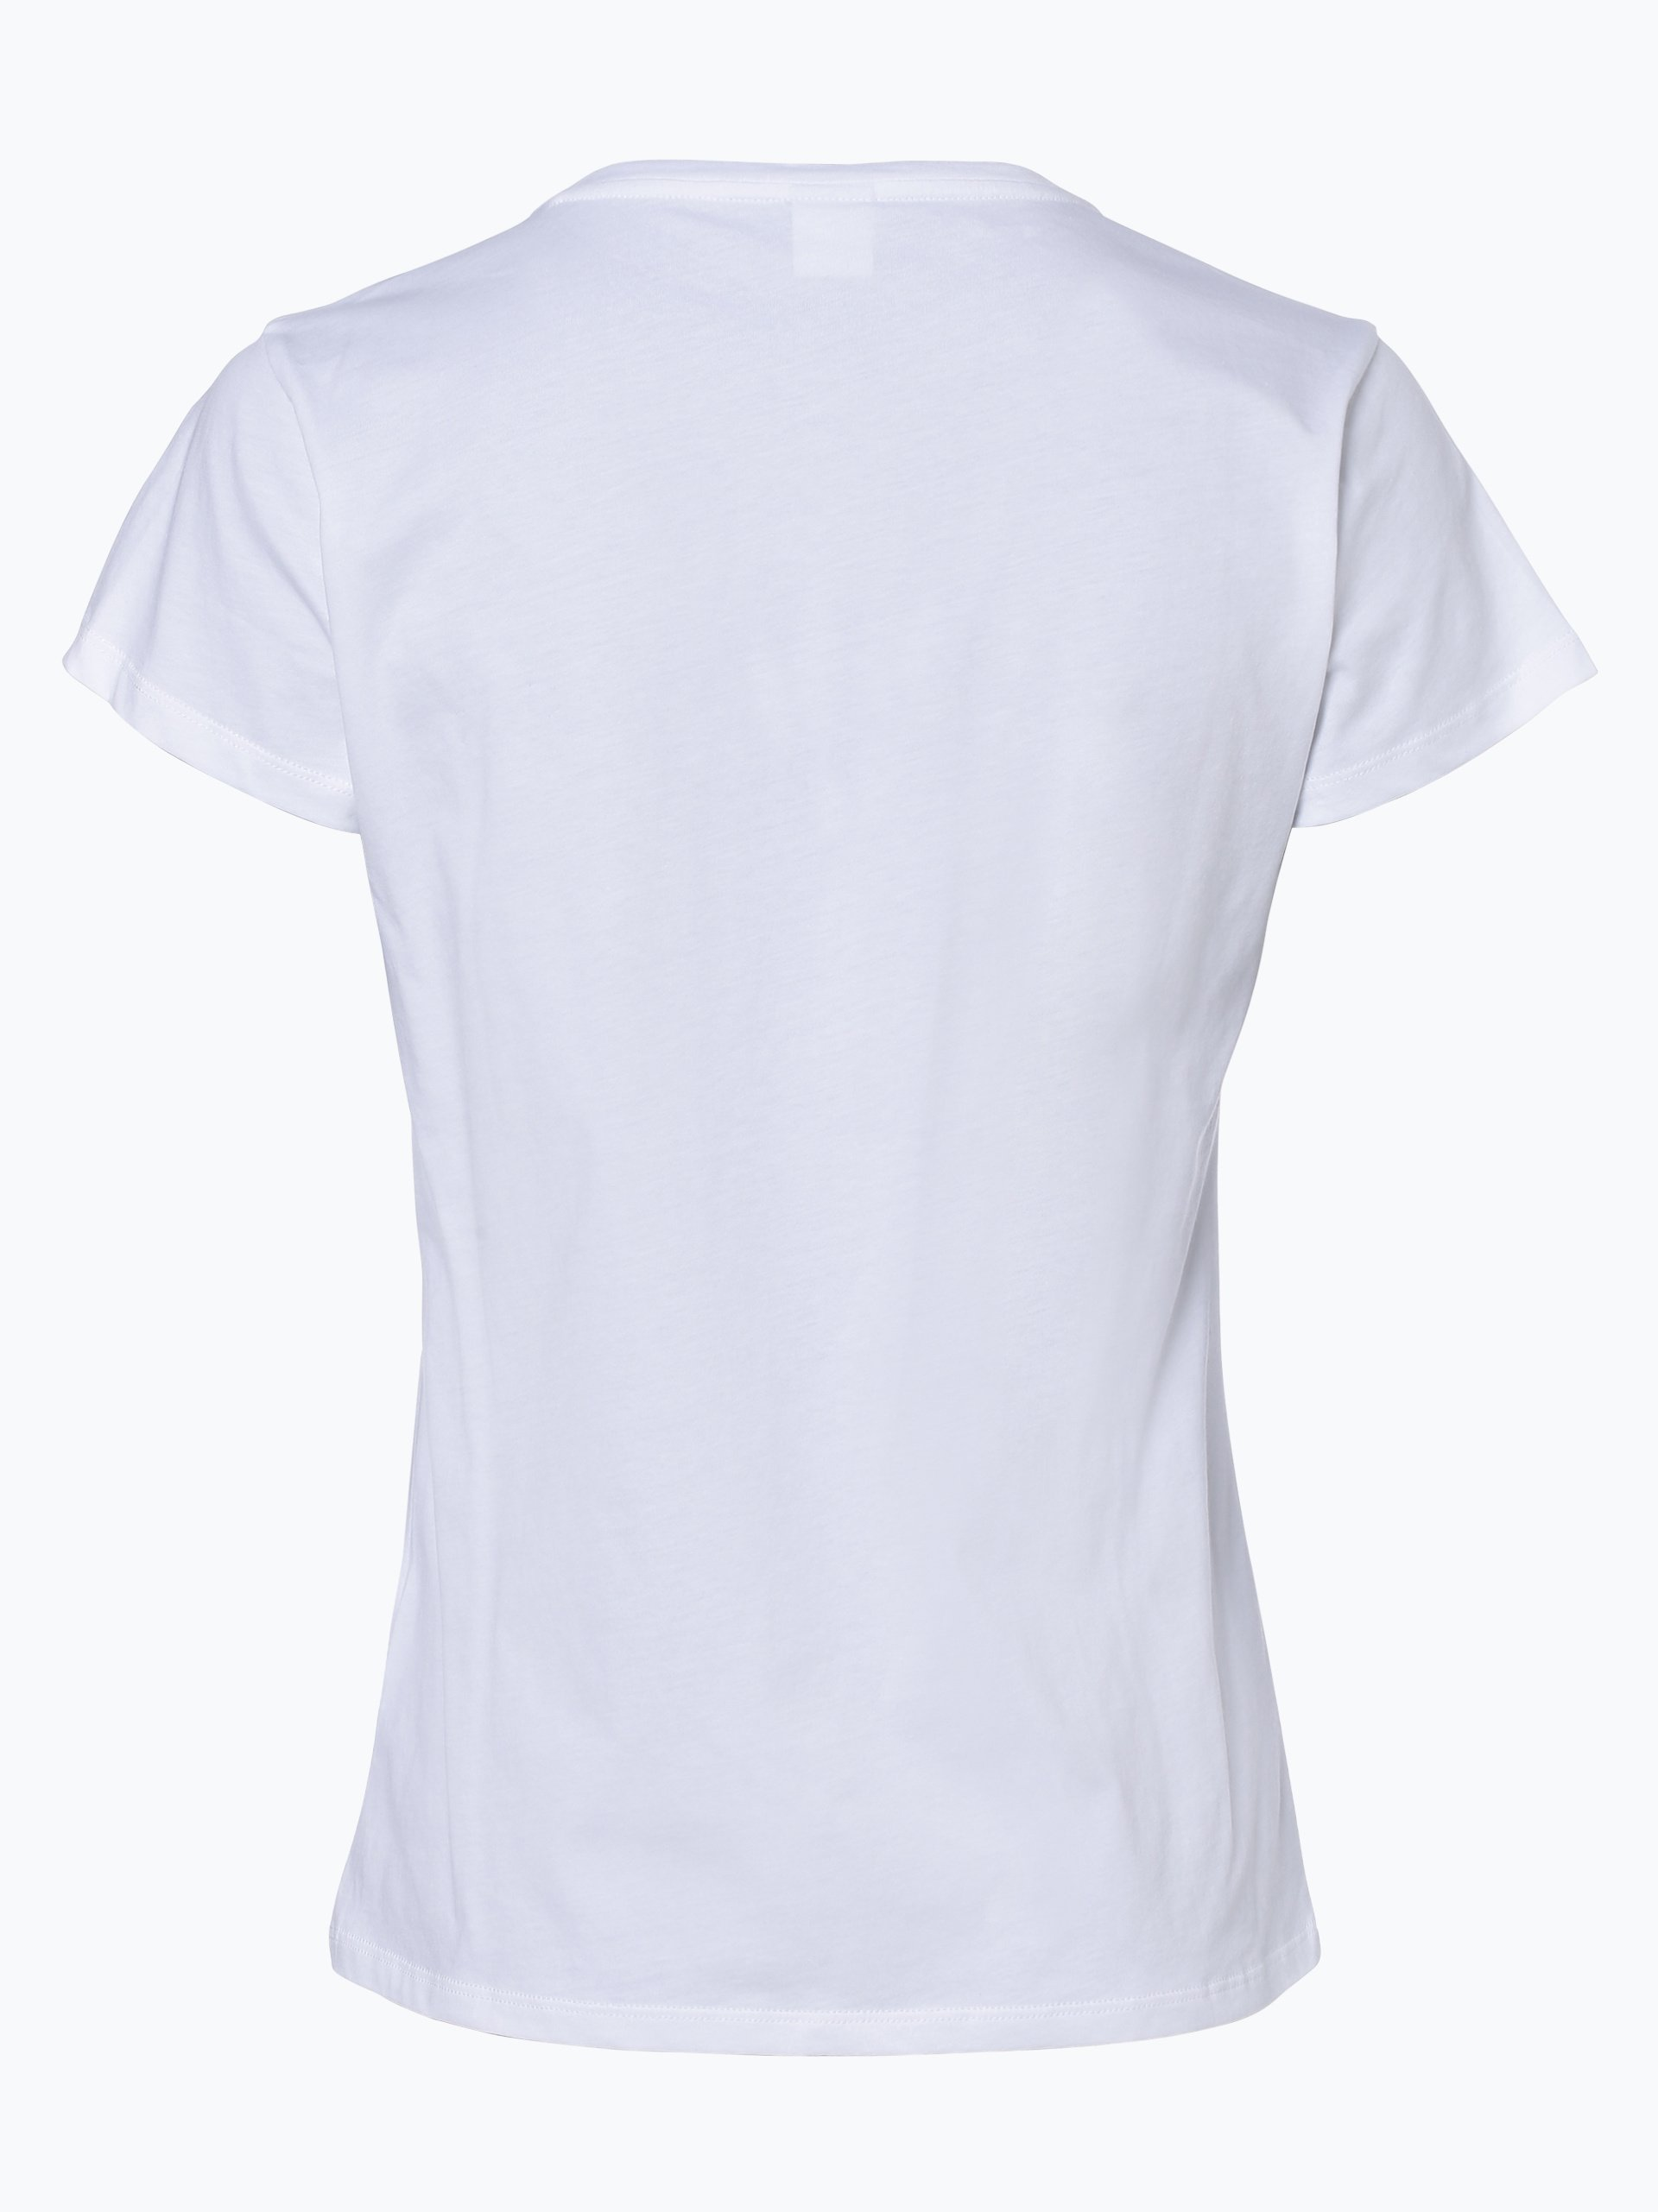 BOSS Casual Damen T-Shirt - Tananas